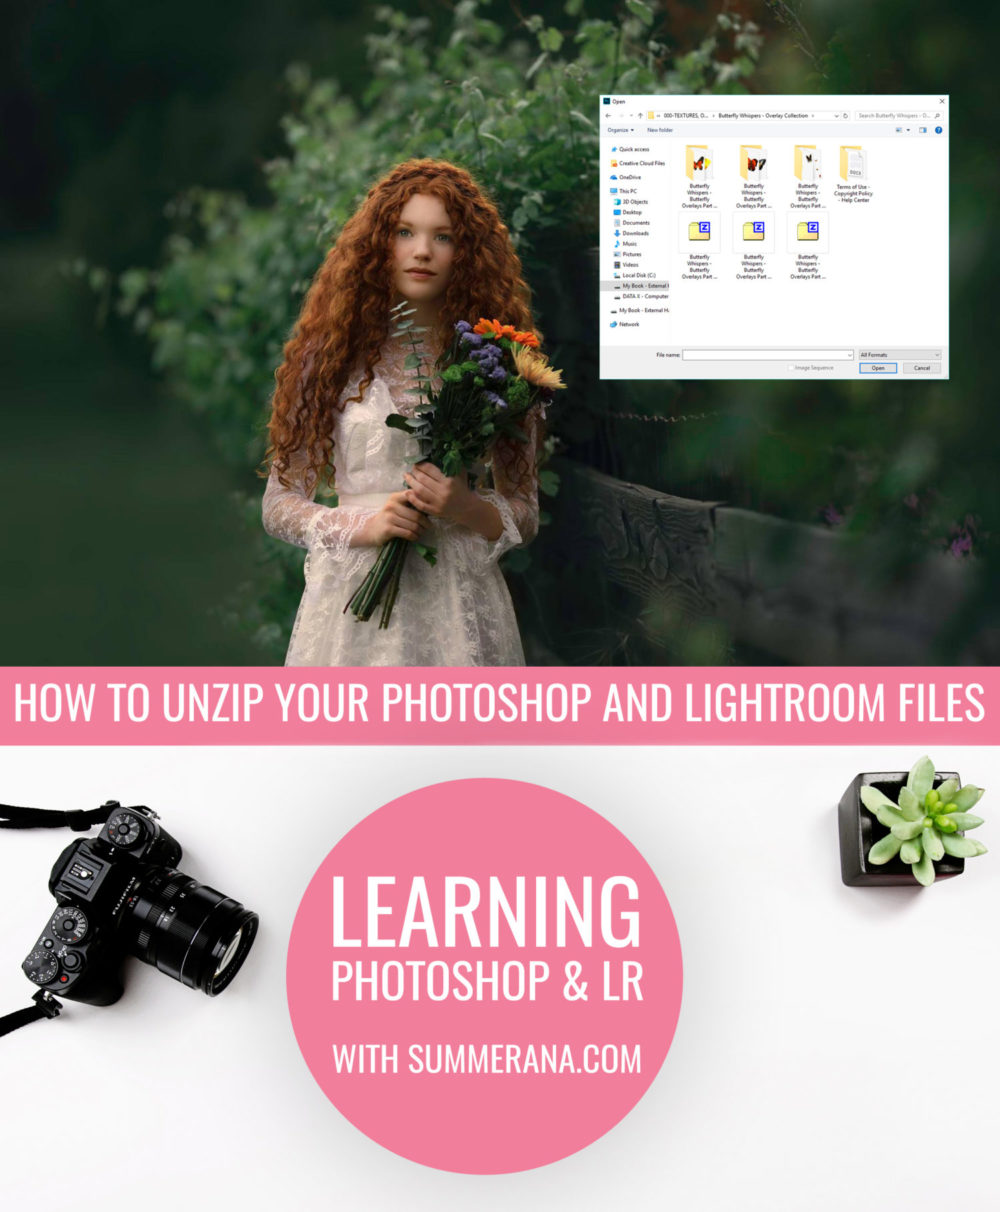 How-to Unzip-your-Photoshop-and-Lightroom-Files.jpg